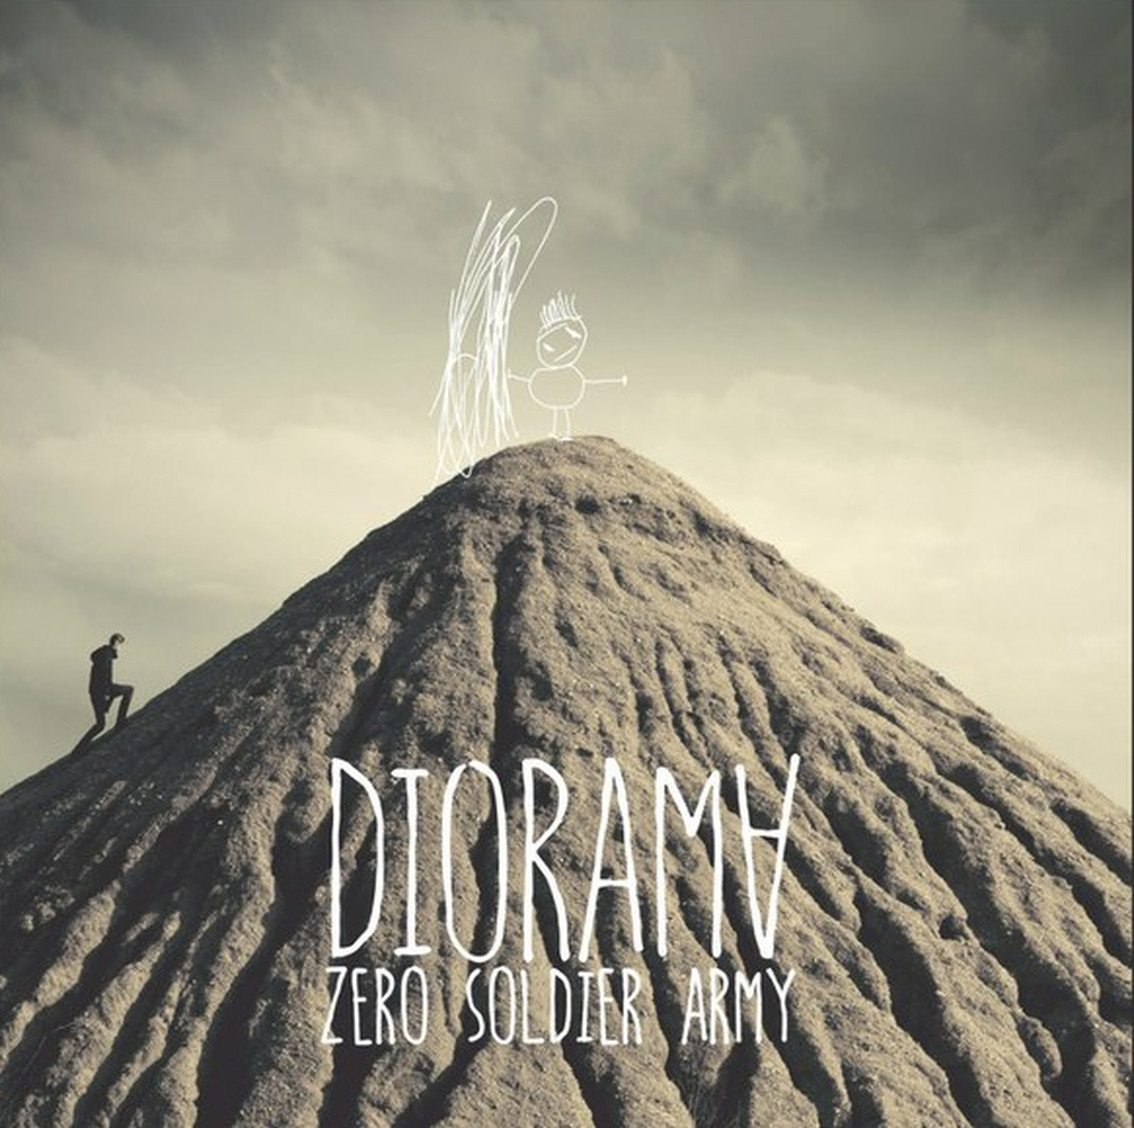 Diorama to release new'Zero soldier army' album this Fall, re-issue'Pale' album with bonus tracks